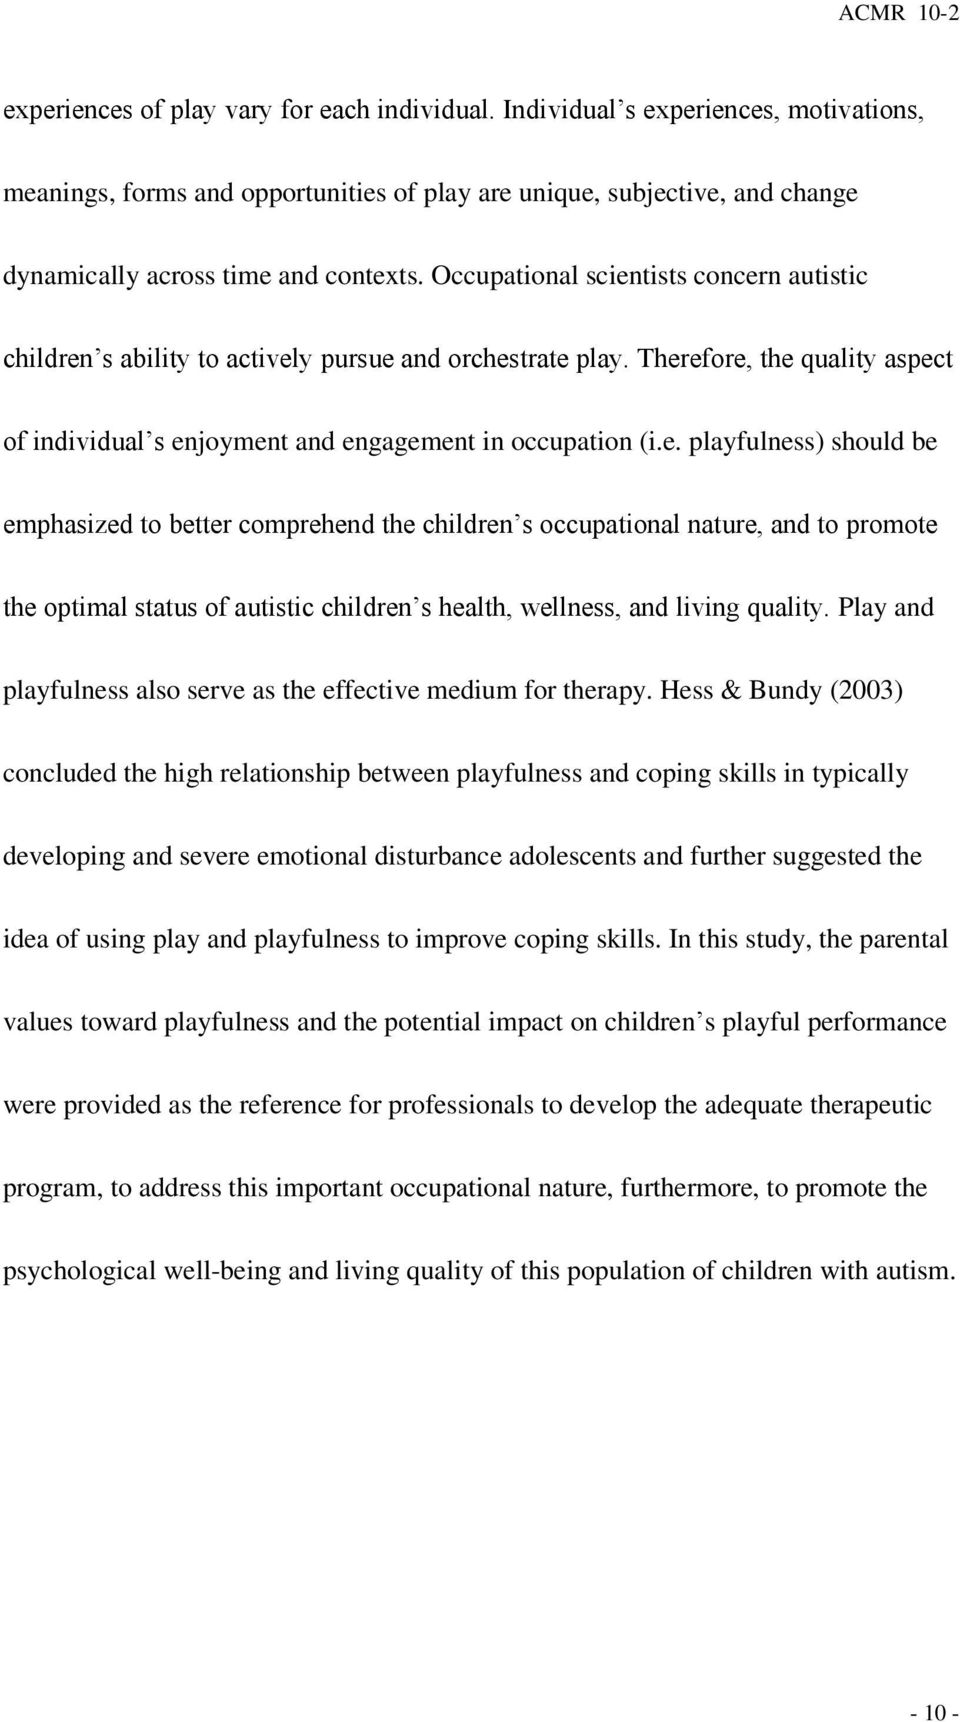 tists concern autistic children s ability to actively pursue and orchestrate play. Therefore, the quality aspect of individual s enjoyment and engagement in occupation (i.e. playfulness) should be emphasized to better comprehend the children s occupational nature, and to promote the optimal status of autistic children s health, wellness, and living quality.